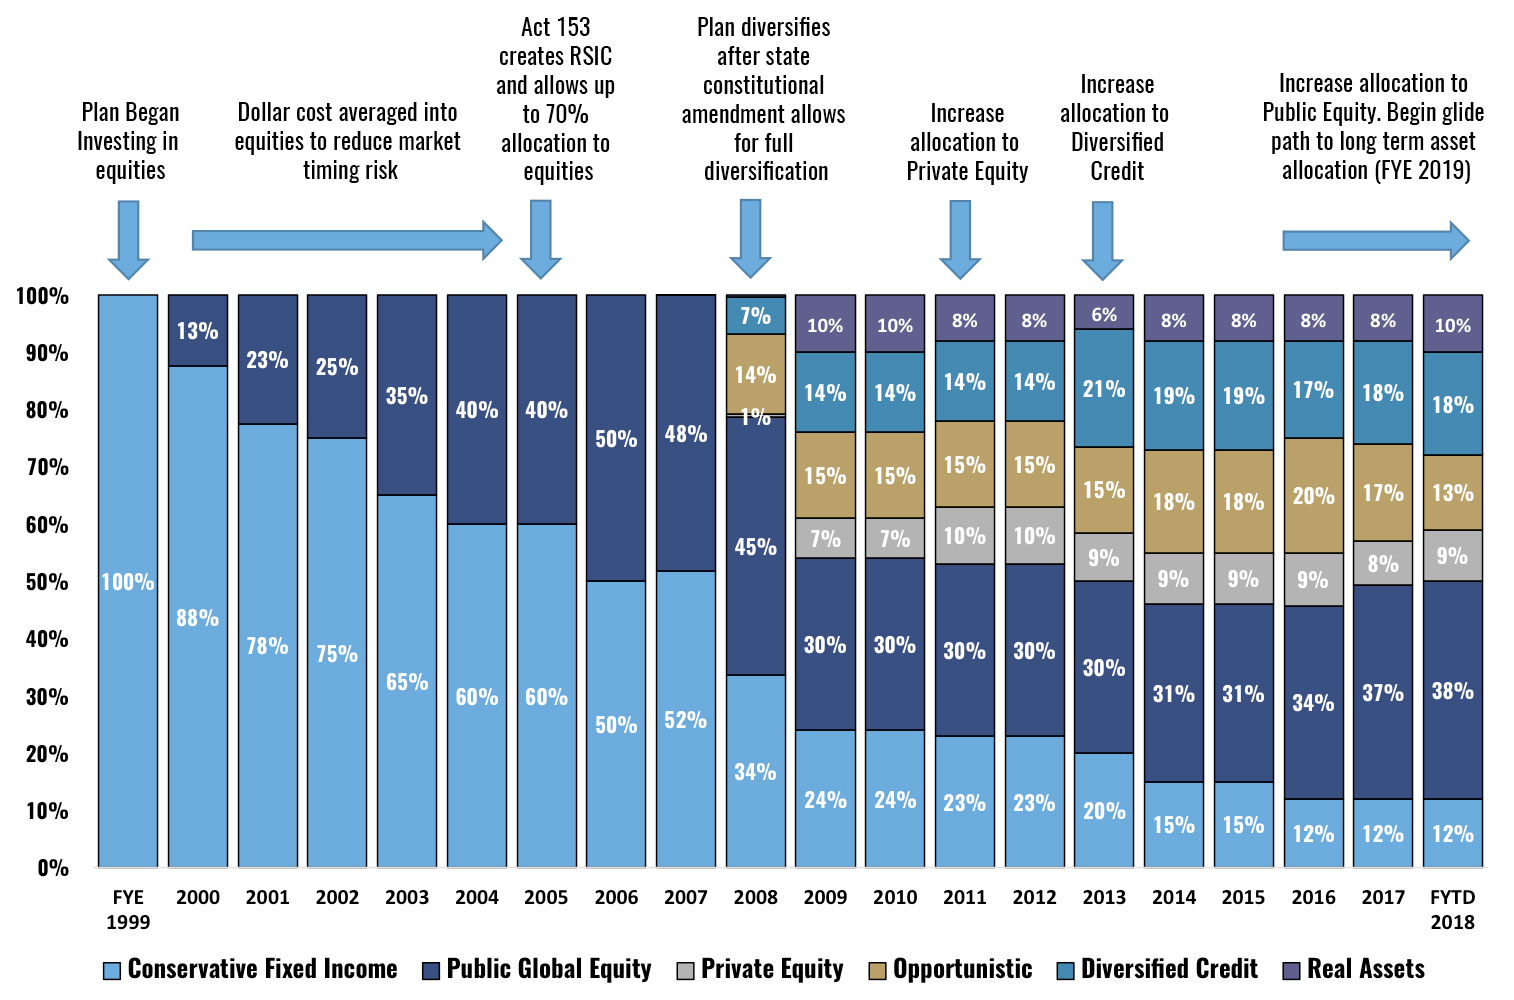 RSIC Policy Asset Allocation Through Time